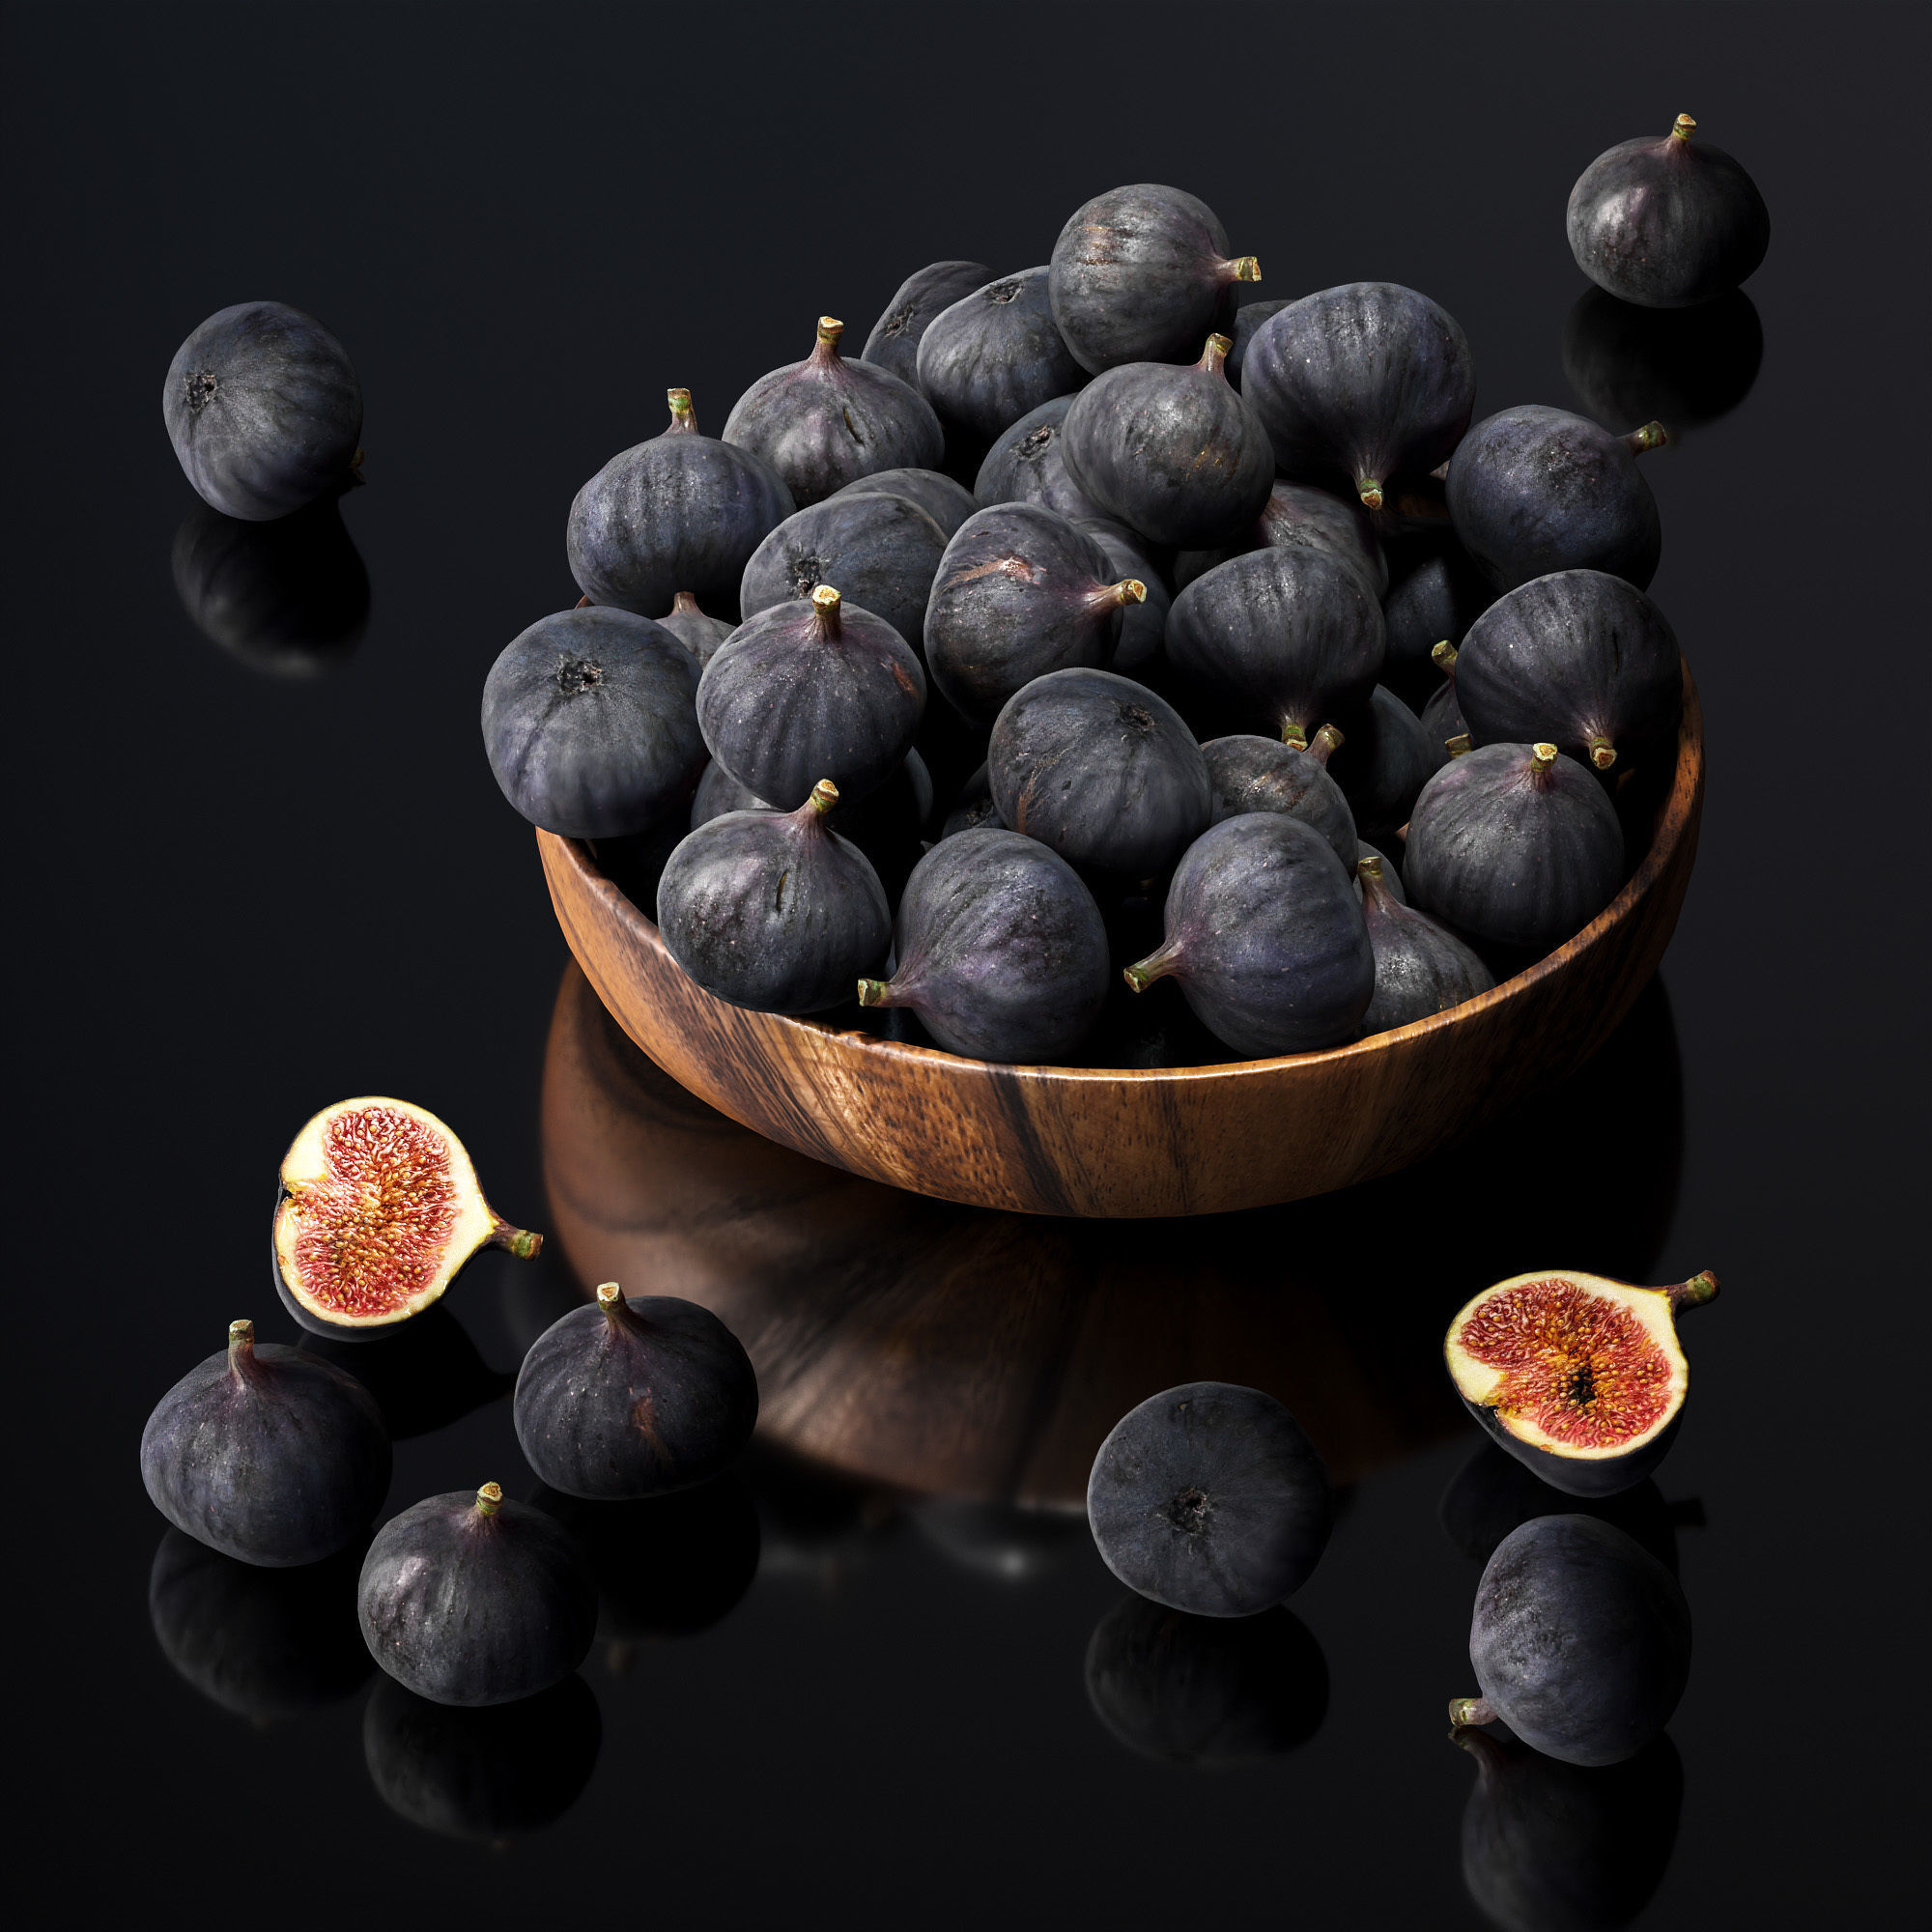 Figs in a wooden bowl